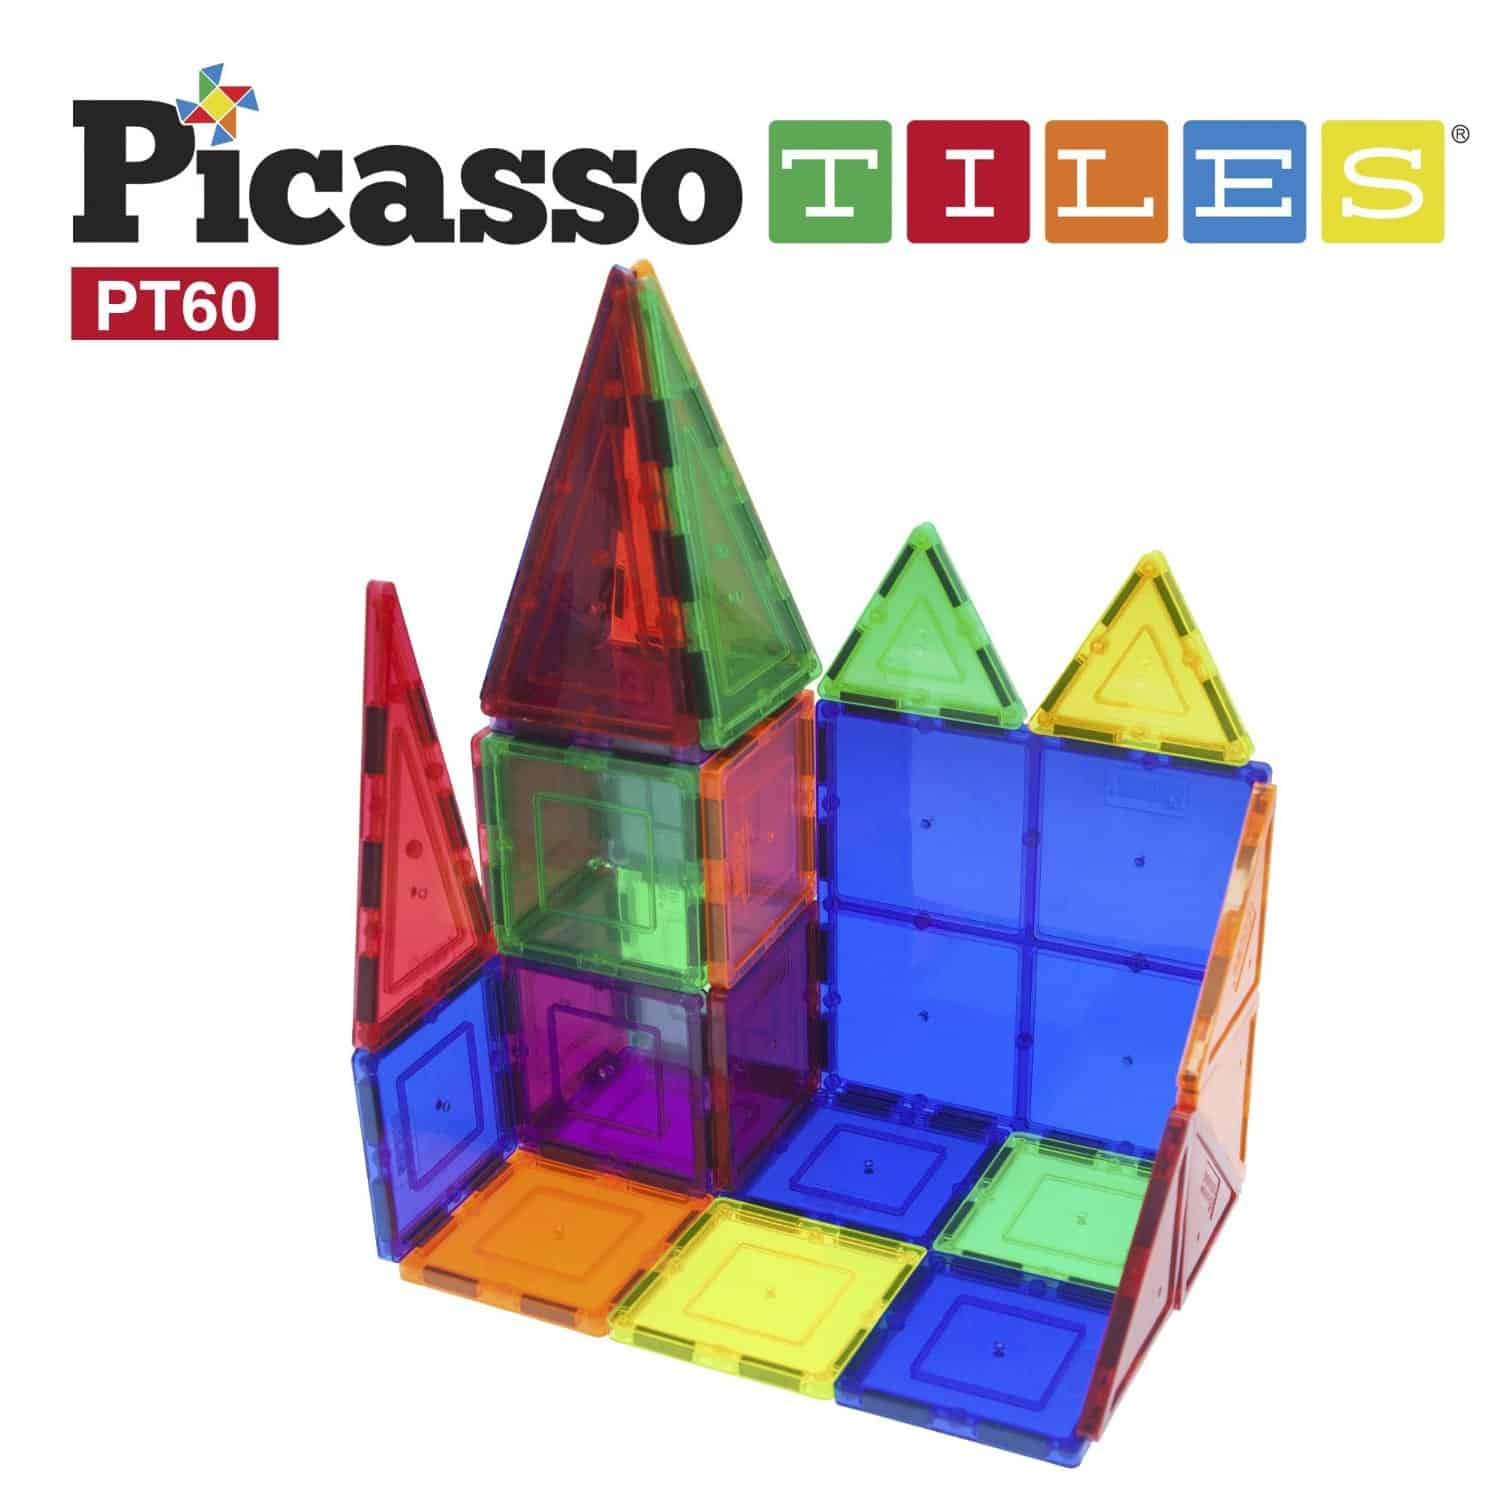 picasso-tiles